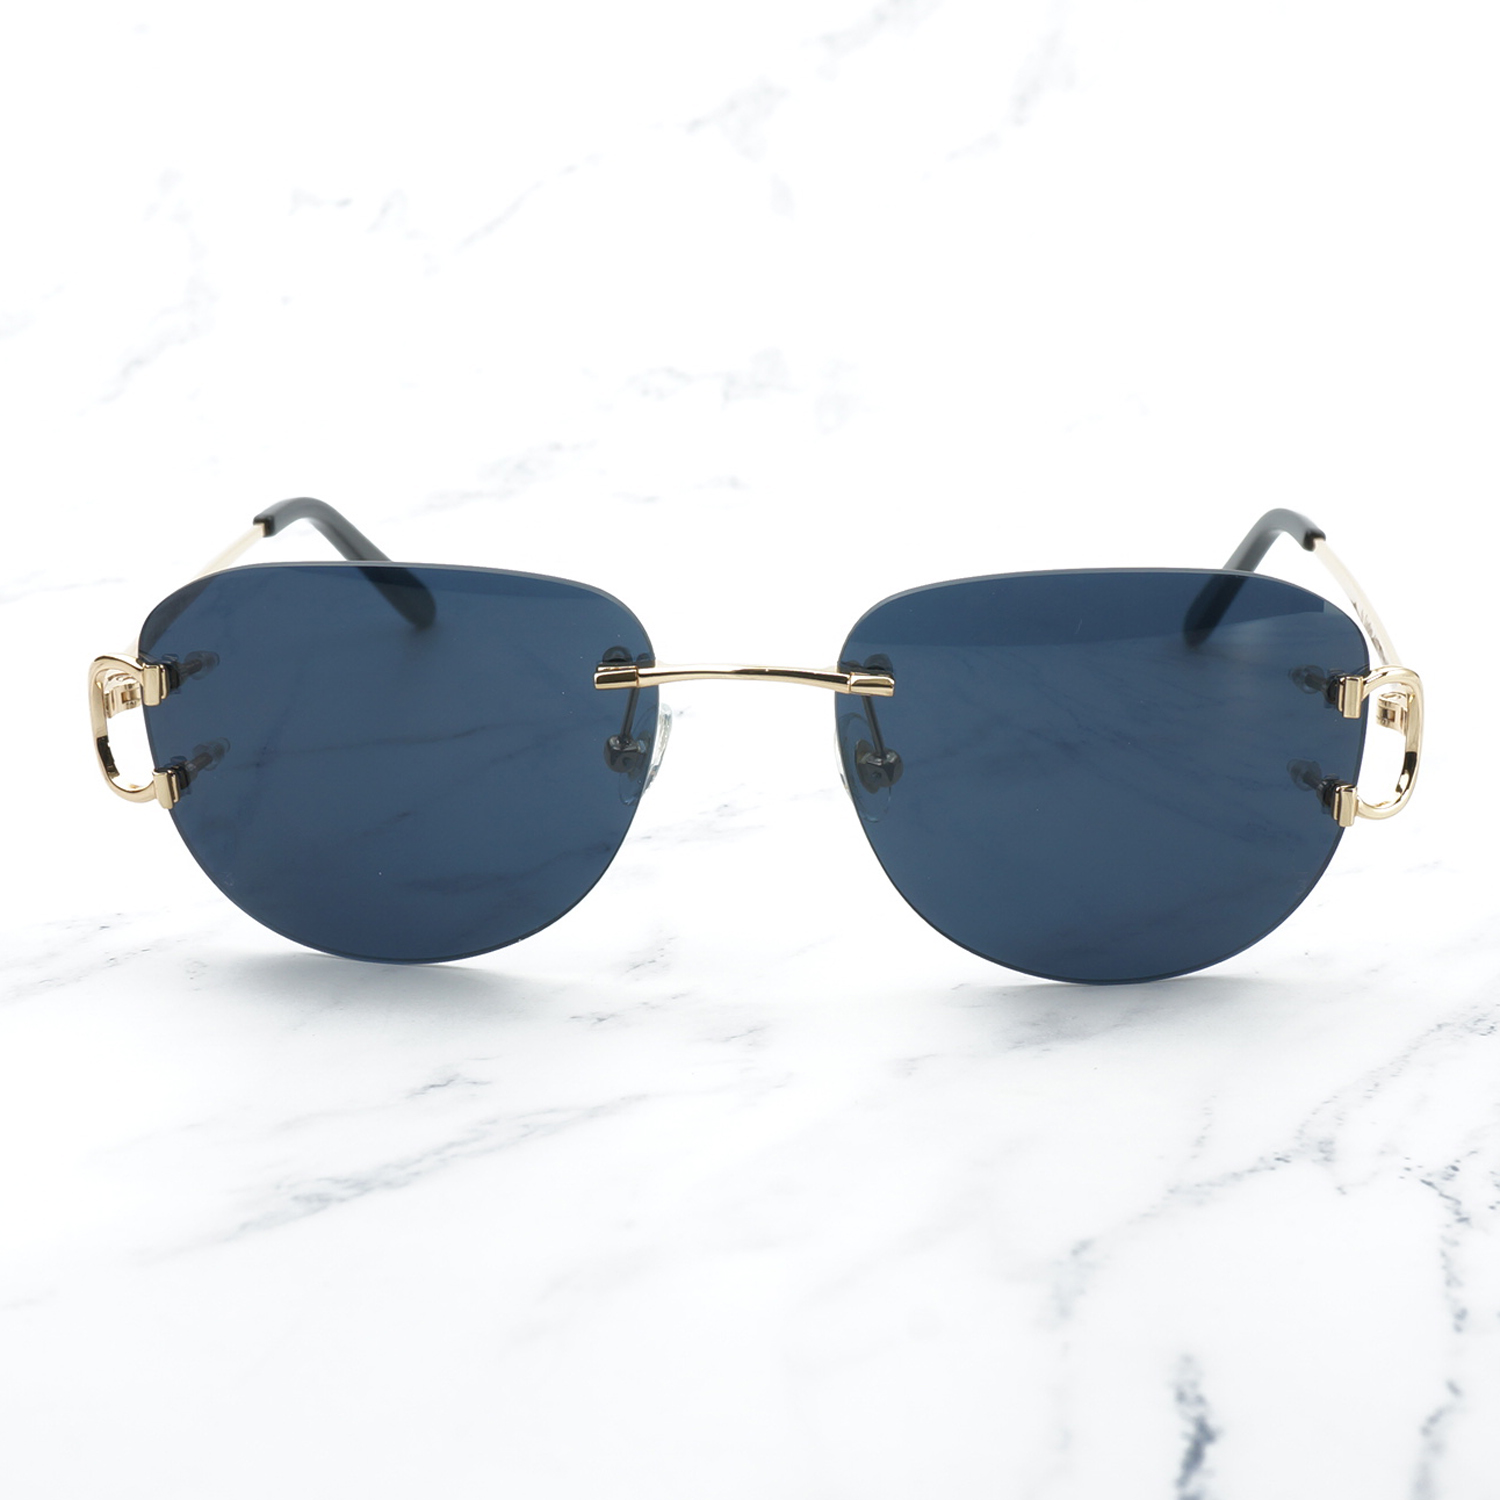 Image 4 - Vintage Pilot Sunglasses for Men Retro Carter Glasses Frame for Women A3 Wholesale Men Sunglass Promotion Female Glass Shades-in Women's Sunglasses from Apparel Accessories